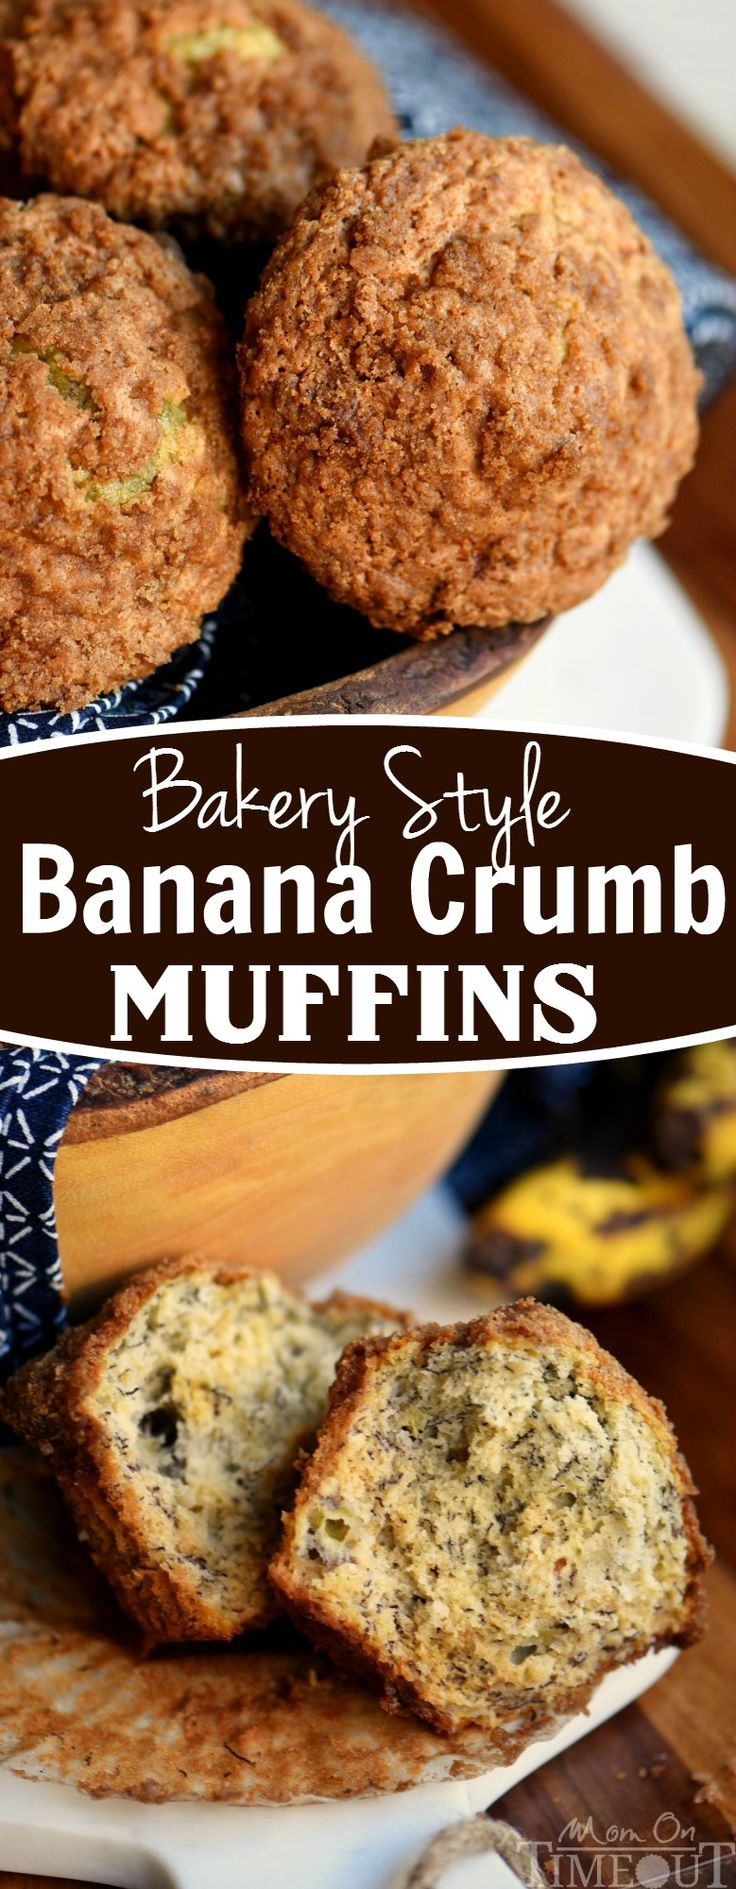 Skip the bakery! Make these instead! Extra moist and delicious, these Bakery Style Banana Crumb Muffins are the BEST way to use up those ripe bananas!